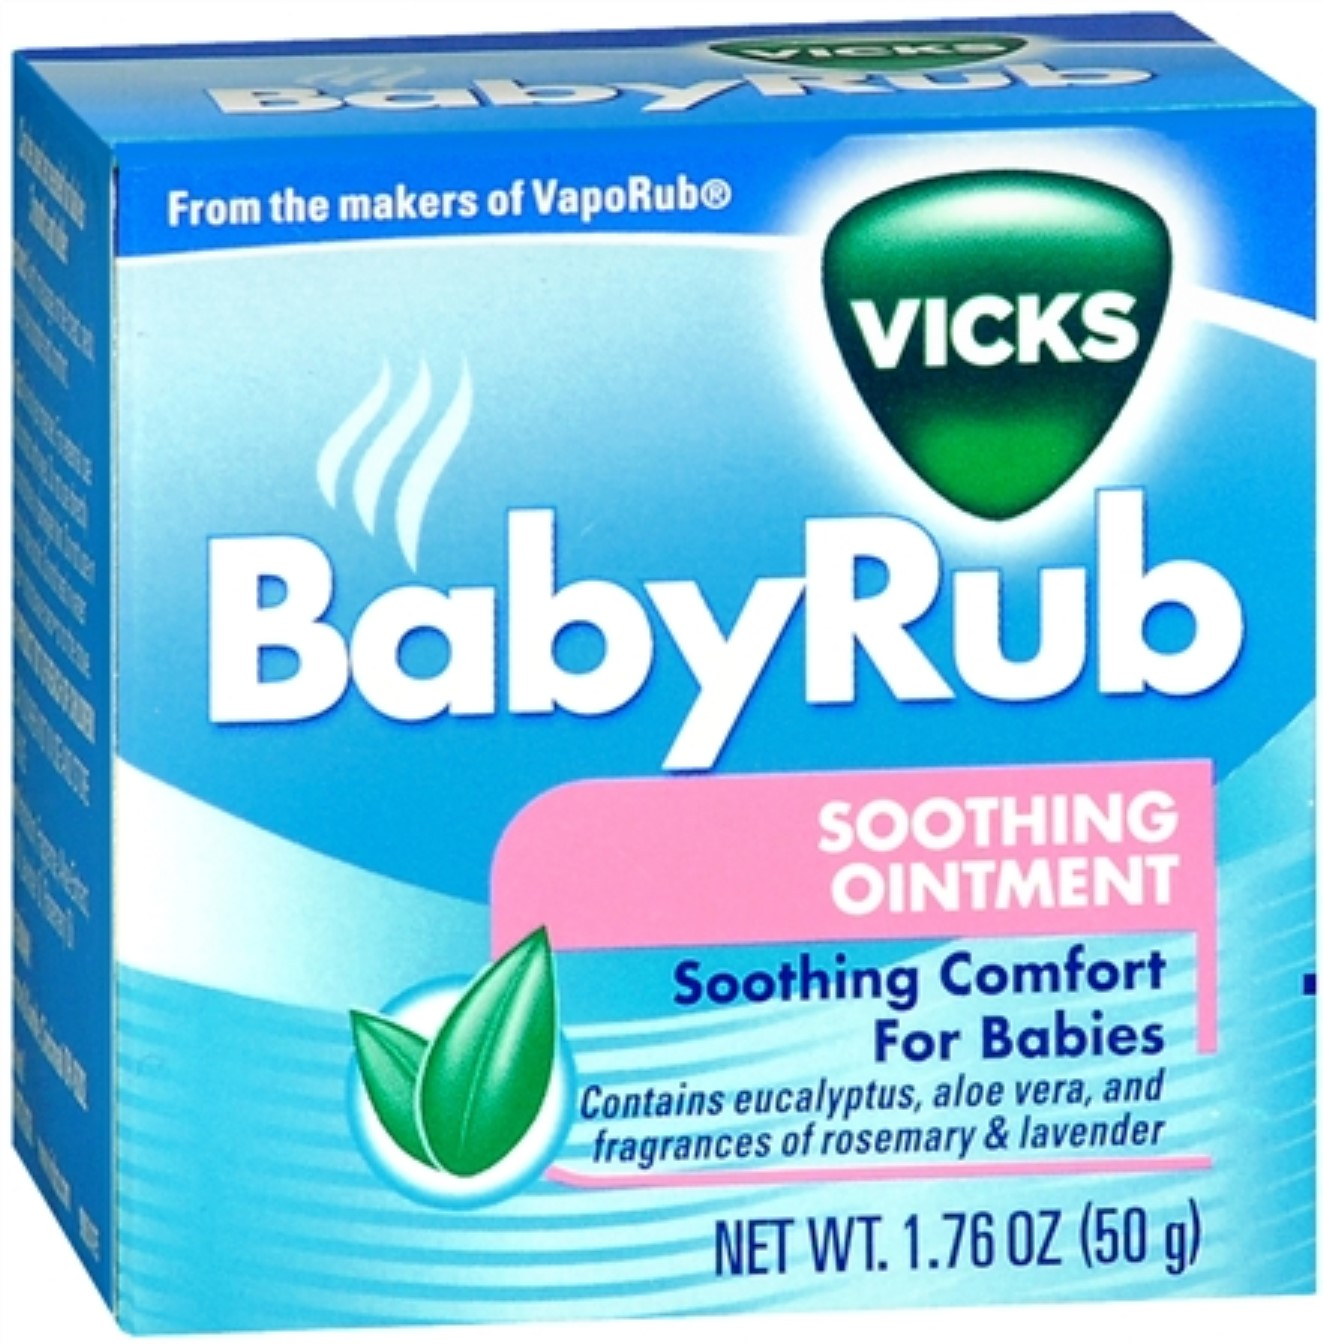 Vicks [VapoRub] BabyRub Soothing Ointment 1.76 oz (Pack of 6)